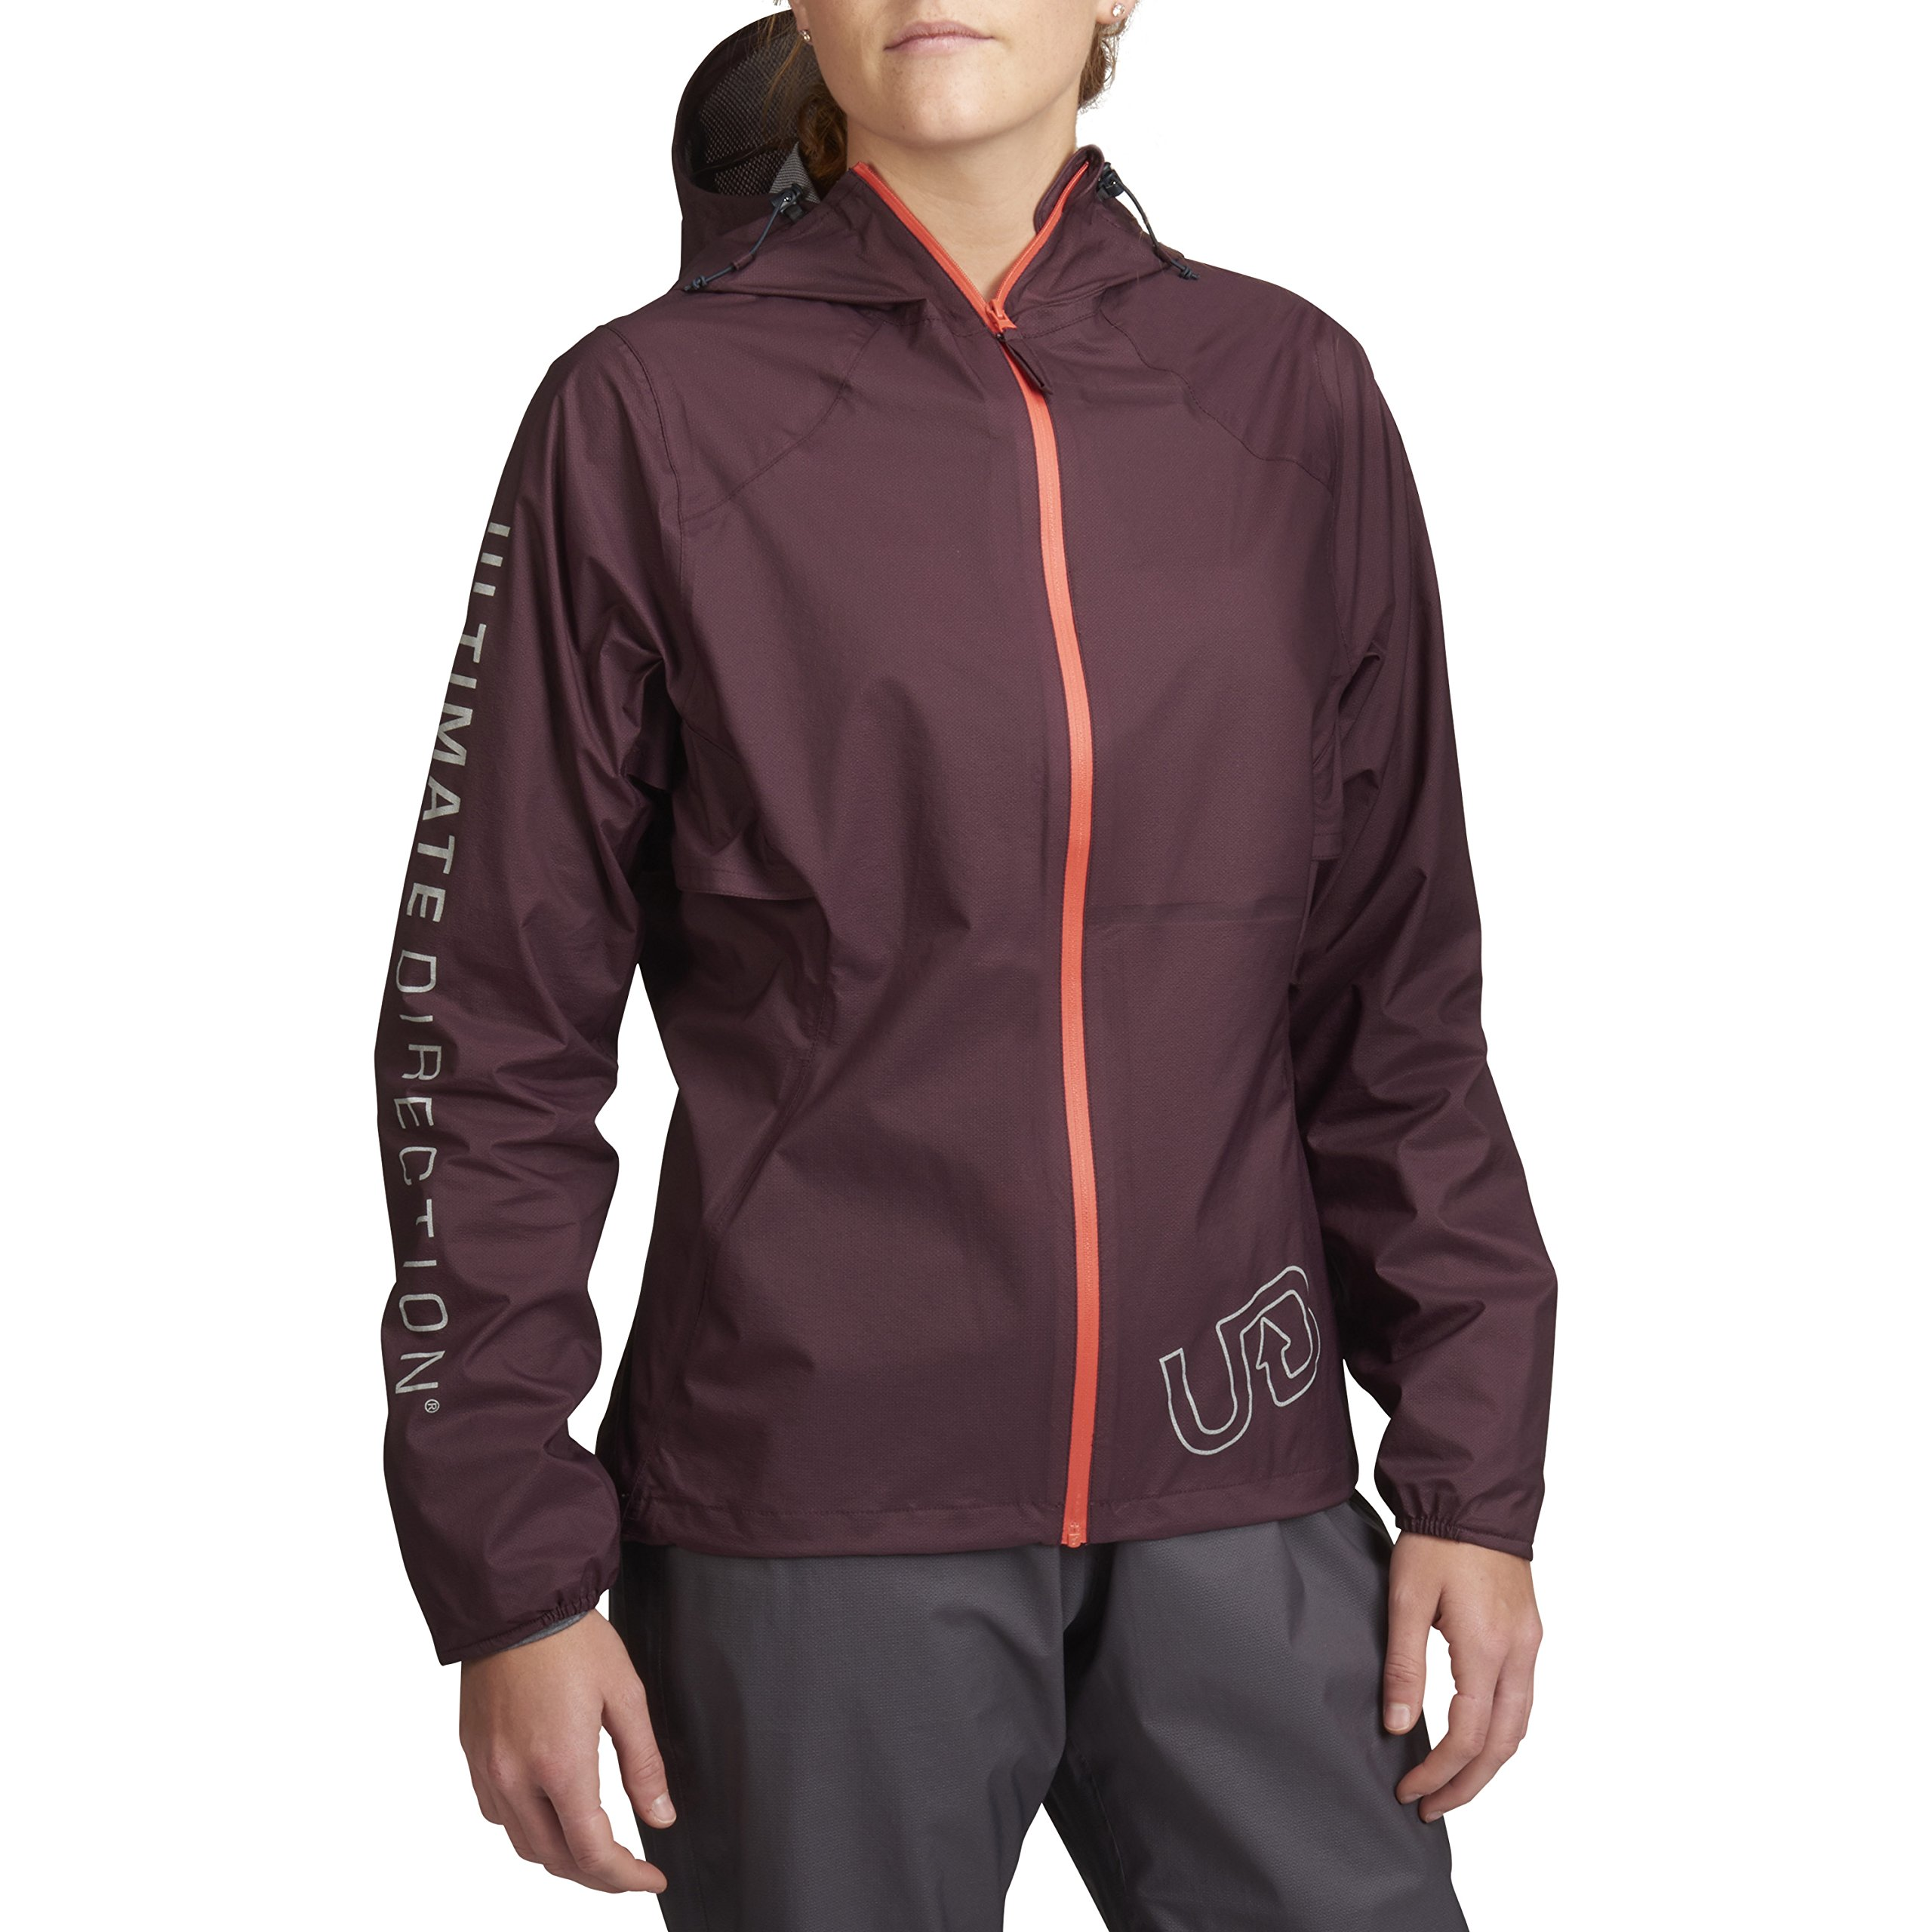 Ultimate Direction Women's Ultra Jacket V2, Fig, X-Small